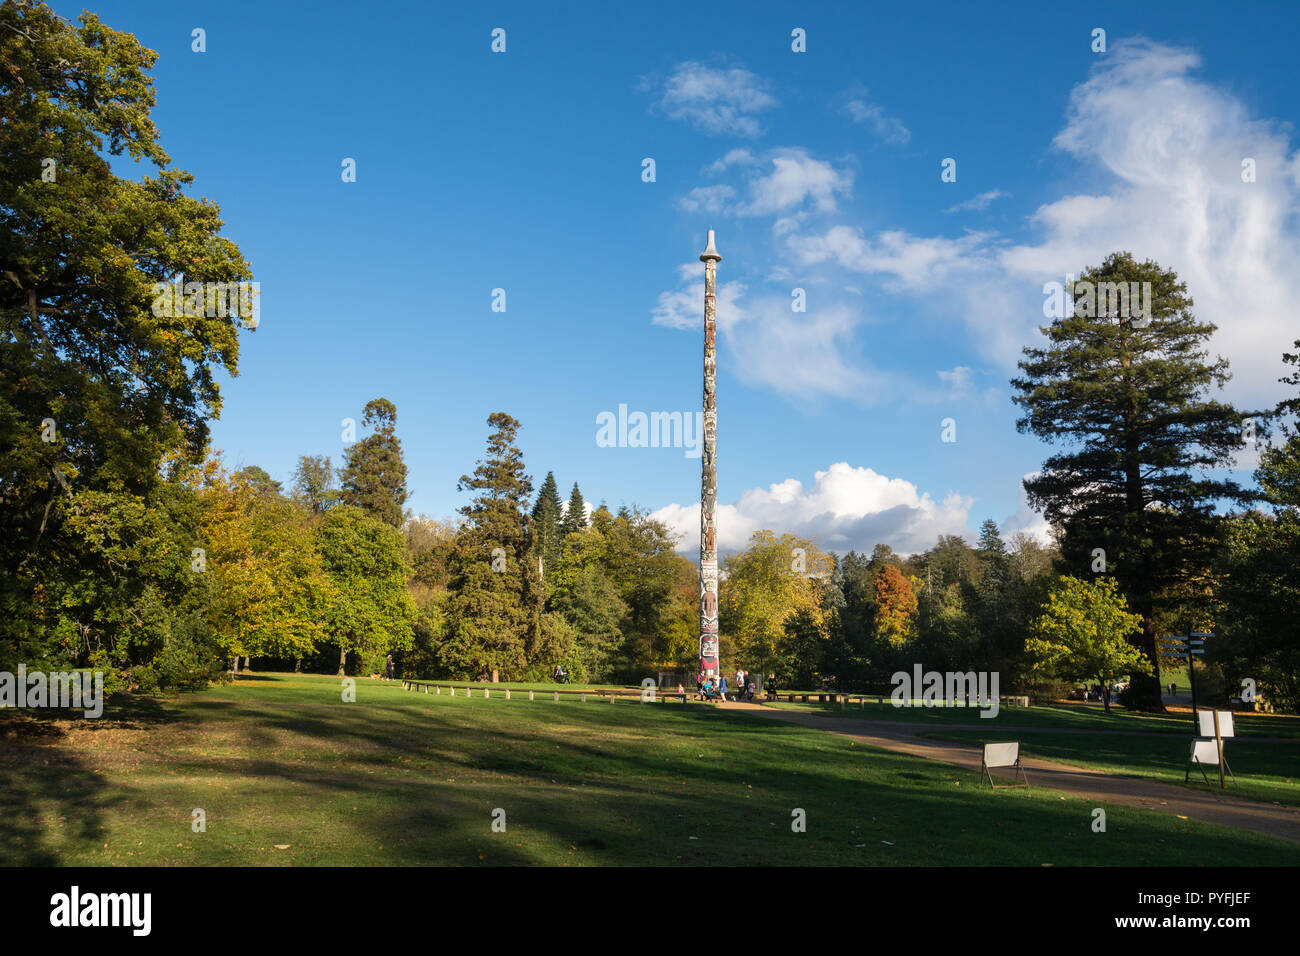 autumn-colours-and-landscape-with-the-totem-pole-at-virginia-water-lake-part-of-windsor-great-park-royal-park-crown-estate-in-surrey-uk-PYFJEF.jpg